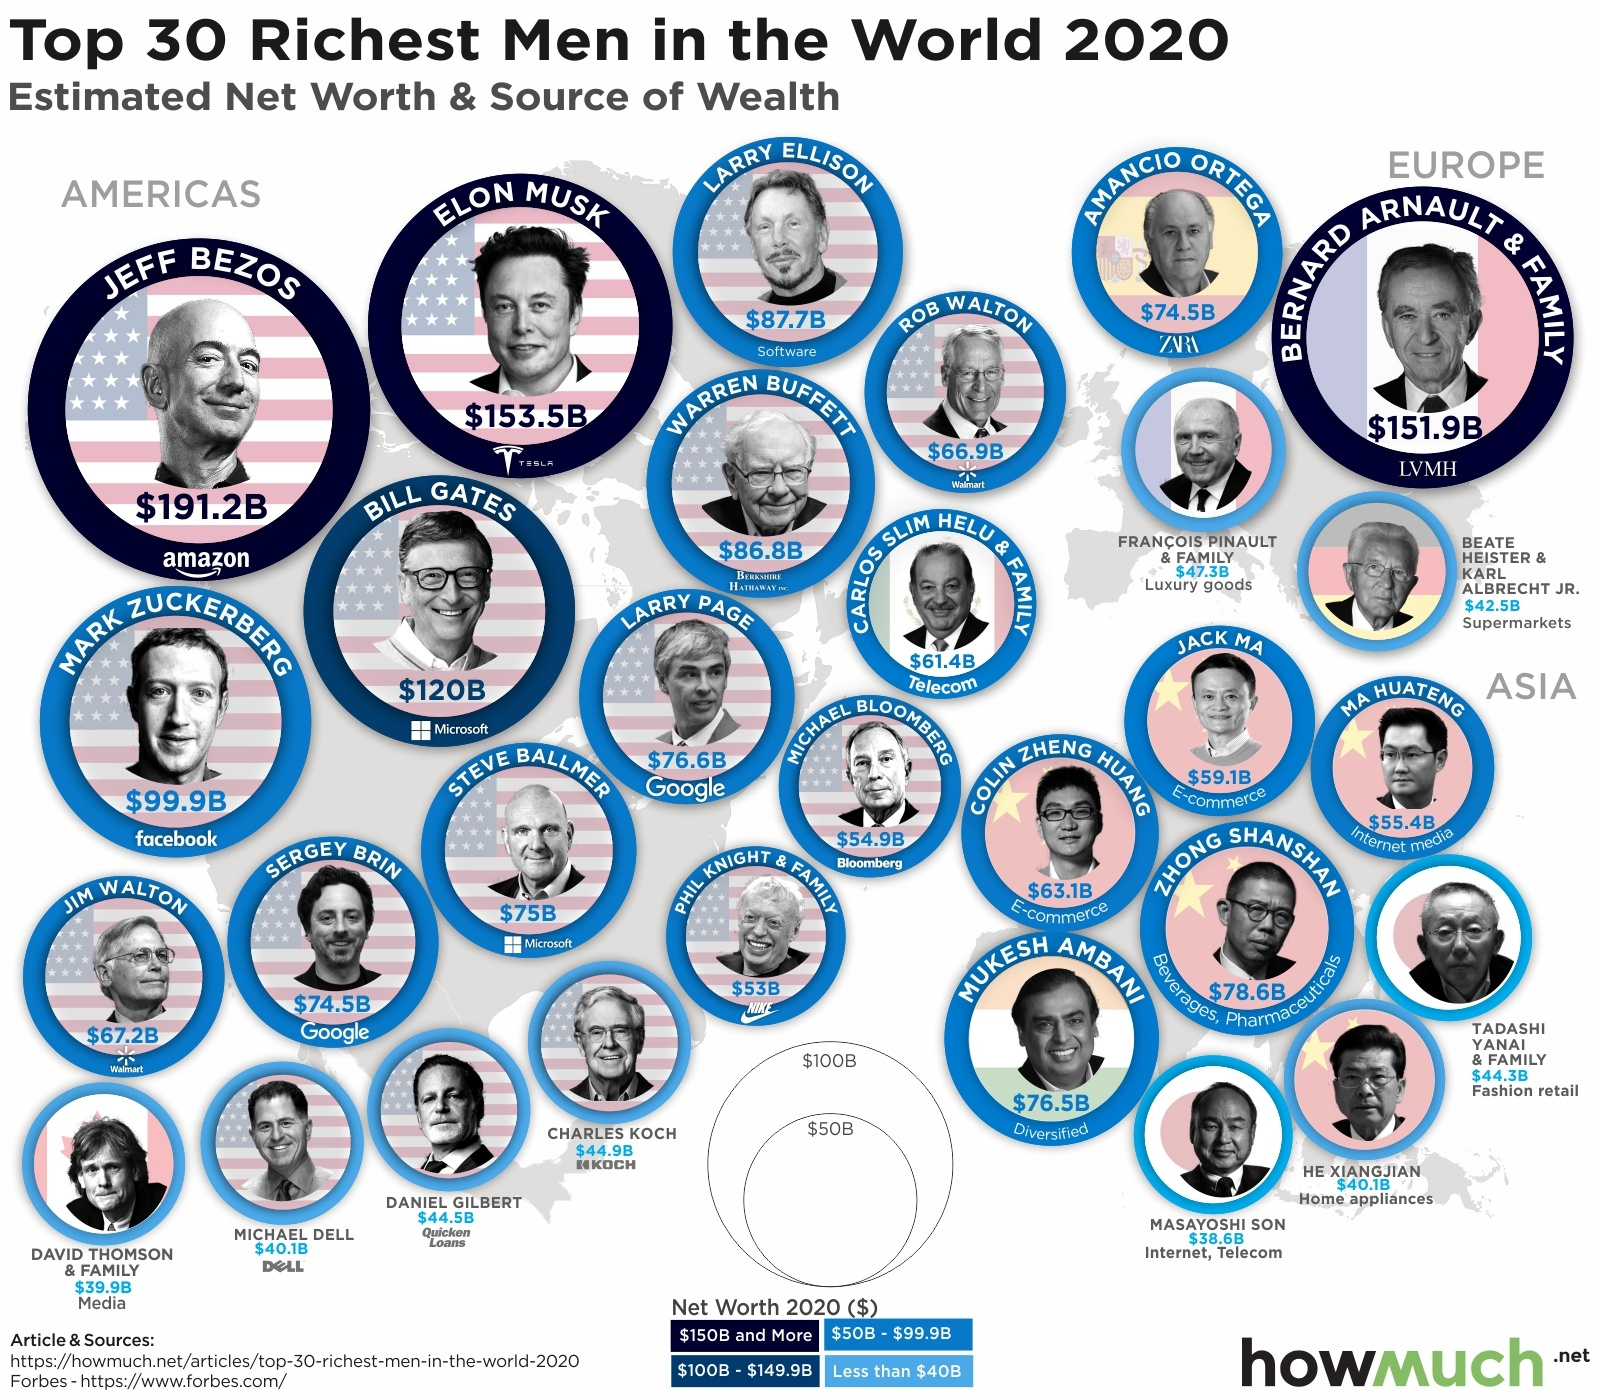 top-30-richest-men-in-the-world-2020-a145